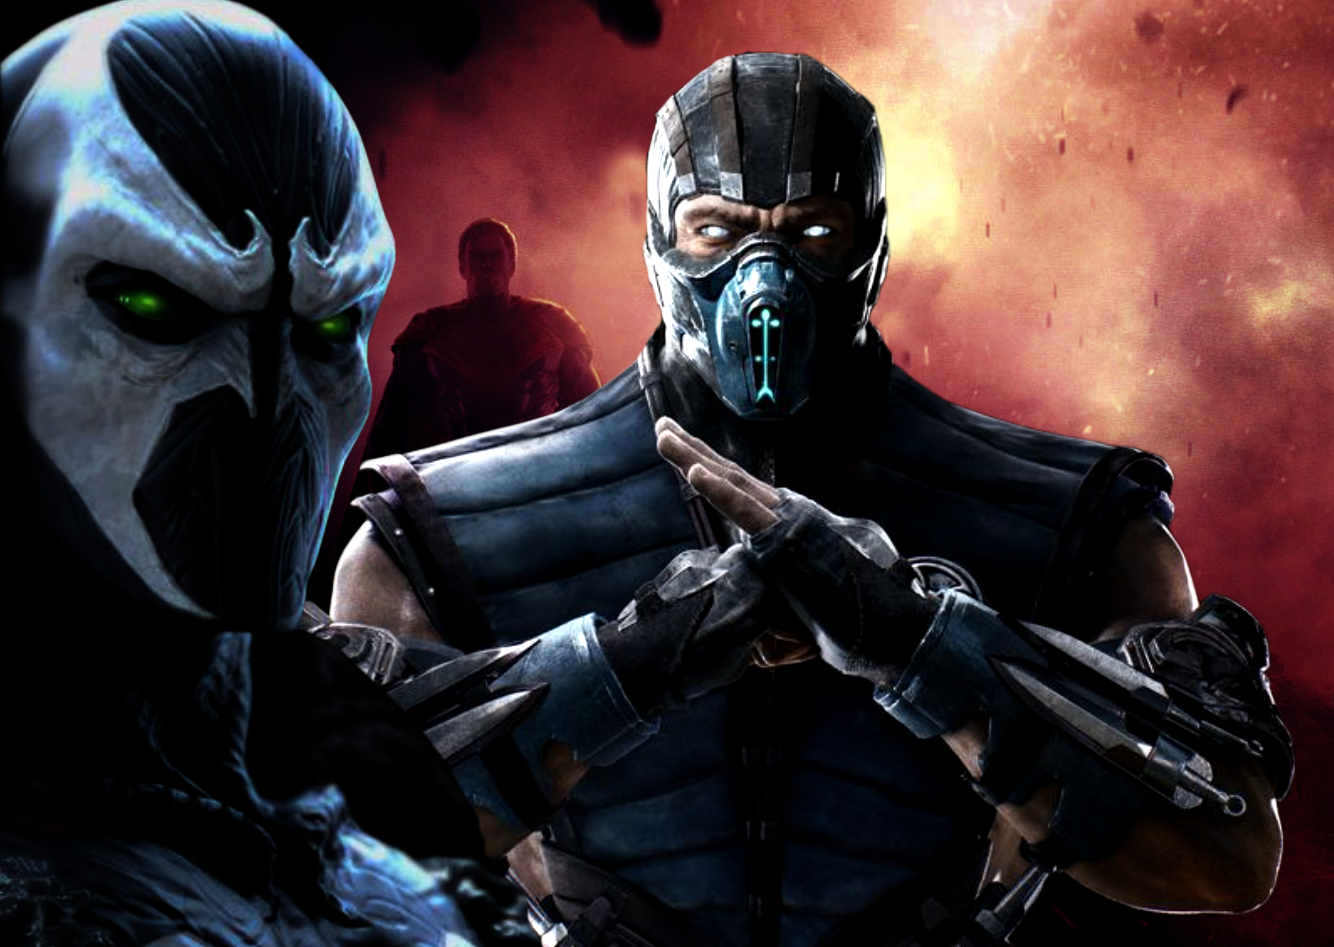 Fans Vote for Spawn & Sub-Zero as Guests in 'Injustice 2'